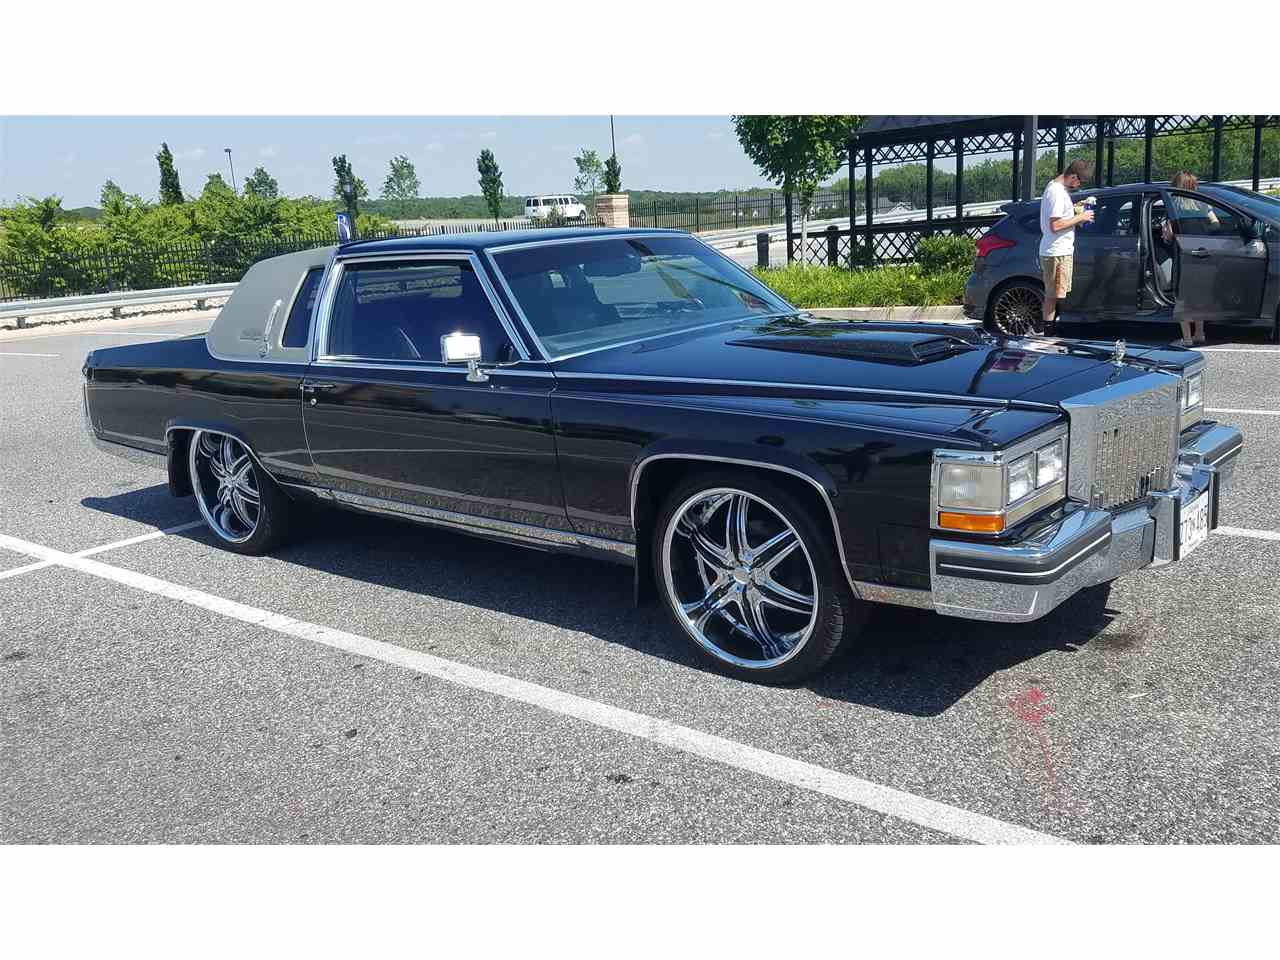 for sale 1983 cadillac fleetwood brougham in abingdon maryland. Cars Review. Best American Auto & Cars Review